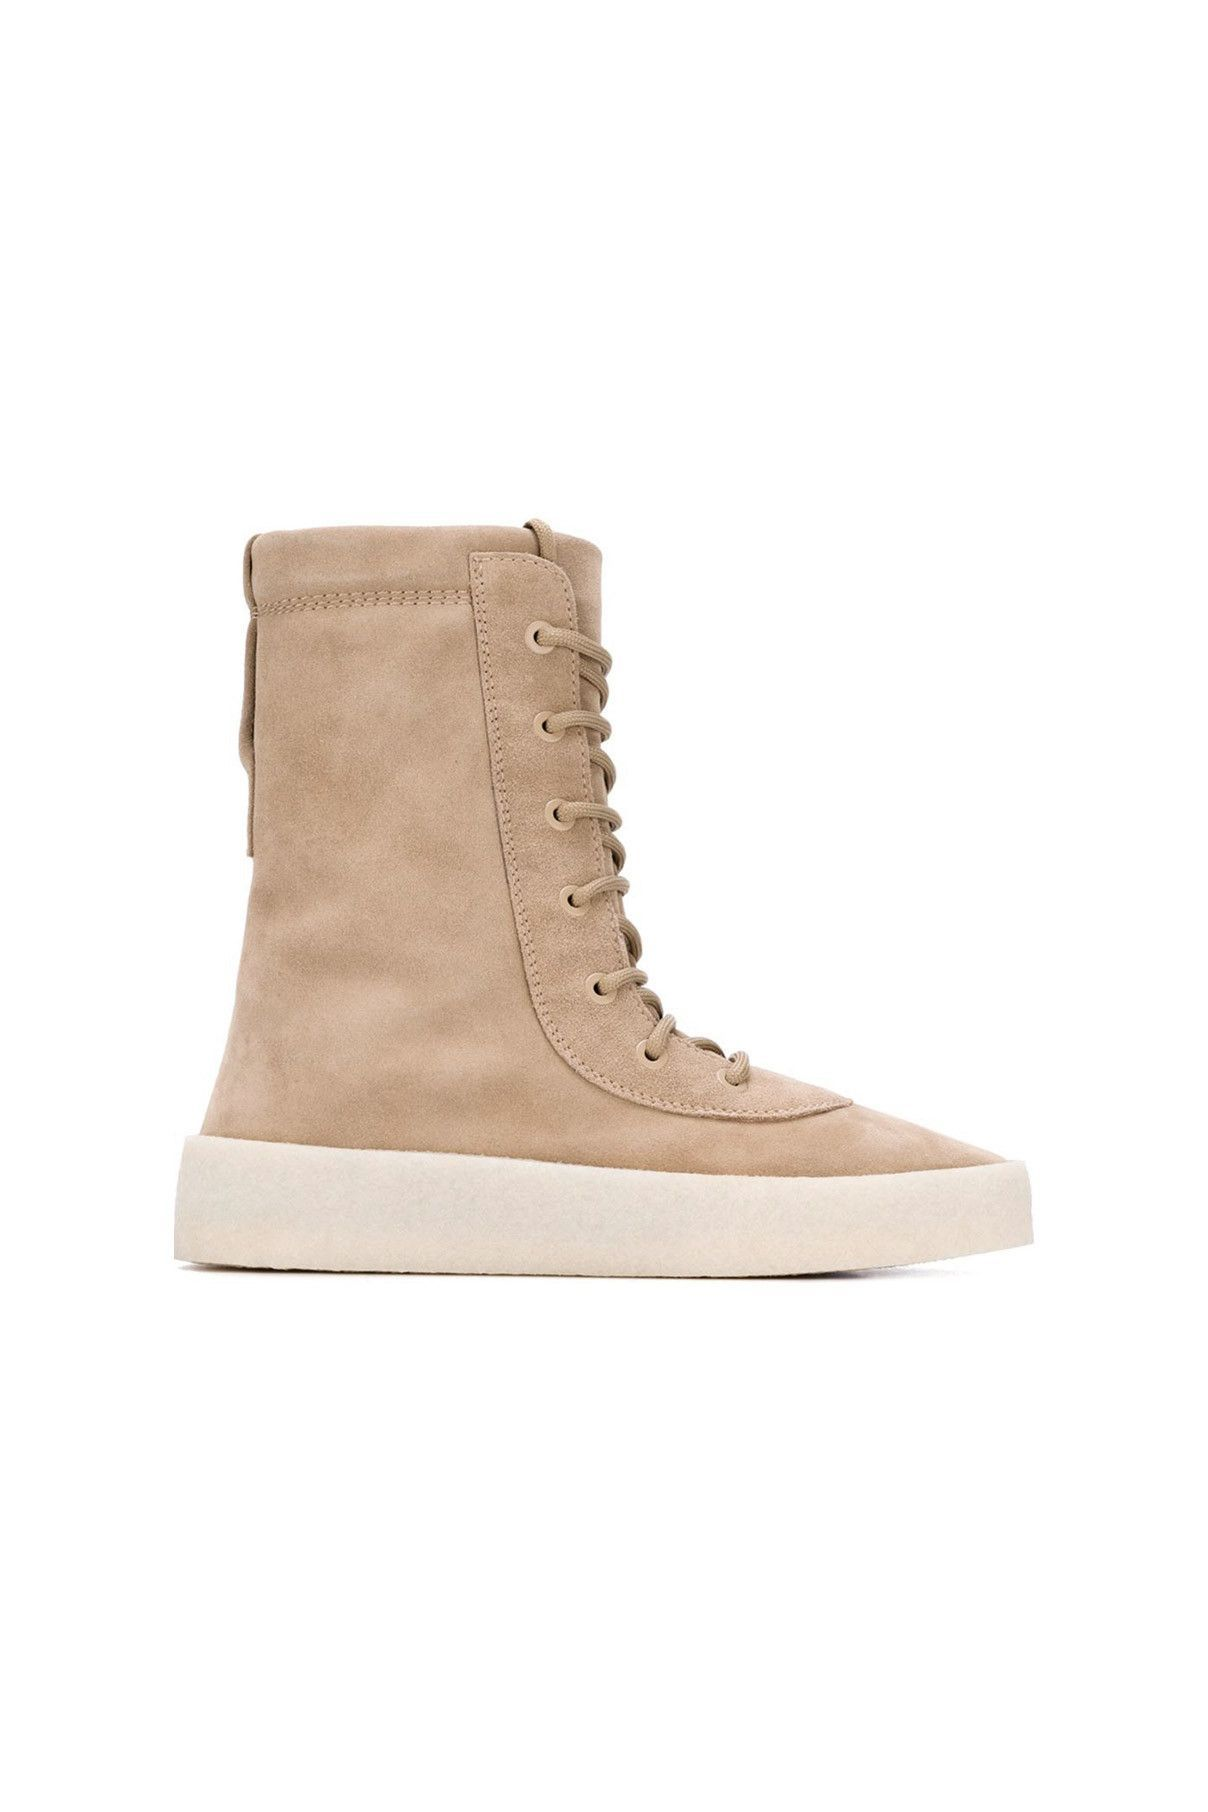 competitive price e332a c1c10 Yeezy / 02 shoe / 05 boot / 02 tall} Crepe Boot | Yeezy ...